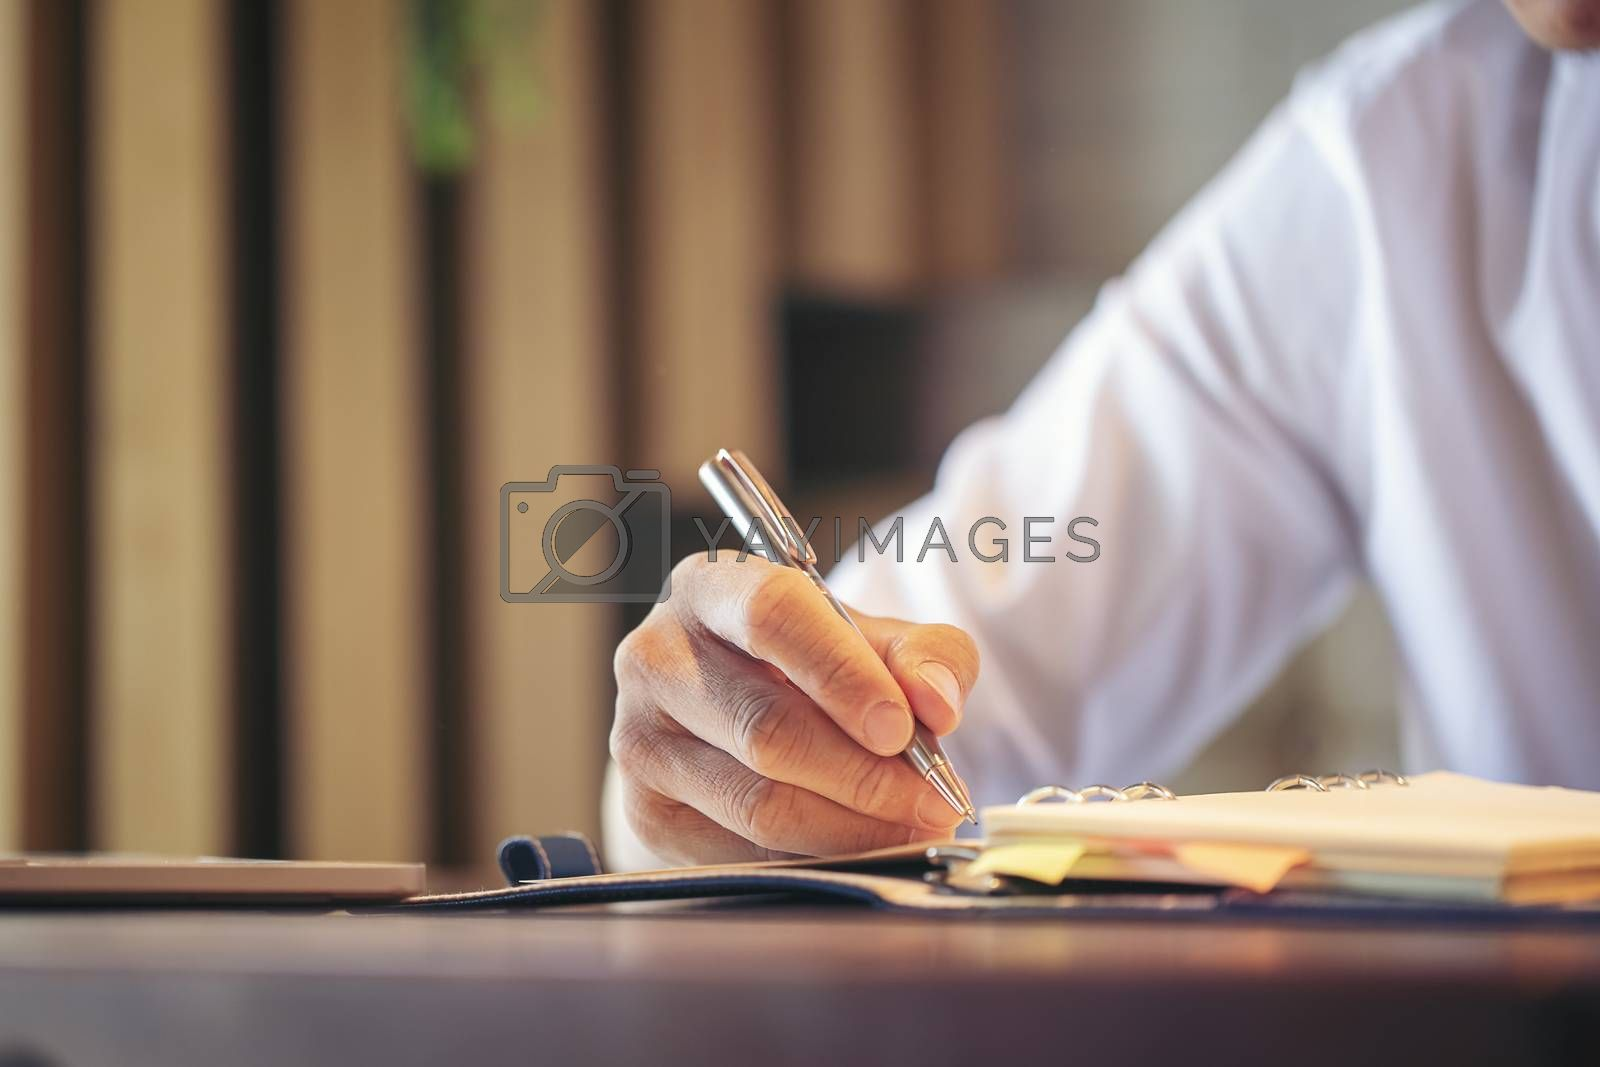 The handsome young businessman sat, planned and negotiated with the client with a mobile phone, with a somewhat stressful gesture in the hand, holding a note pen as the client wants.